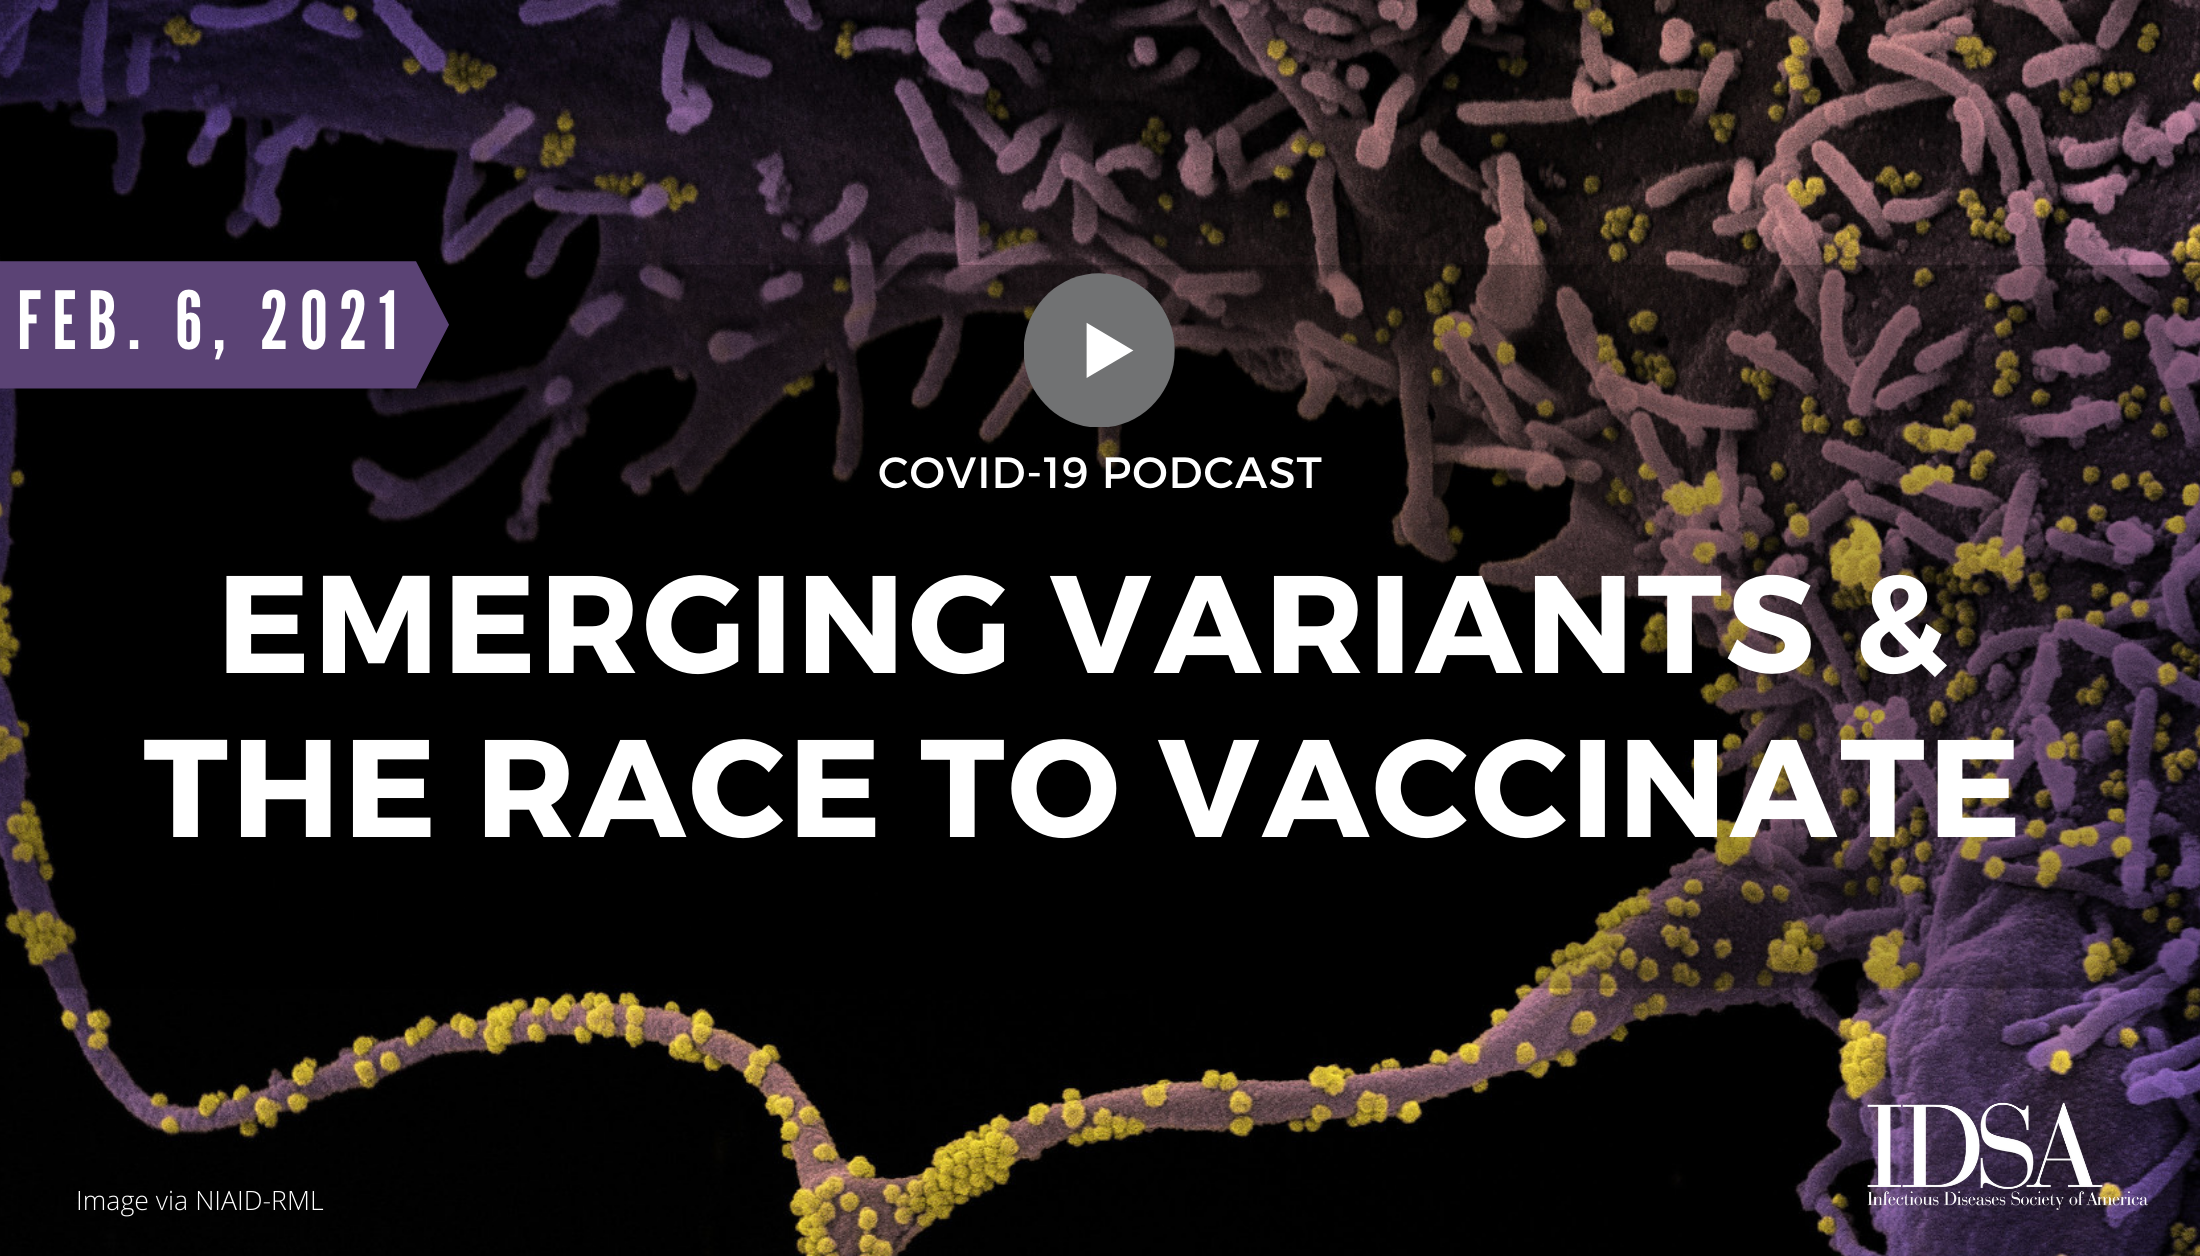 Emerging Variants and the Race to Vaccinate